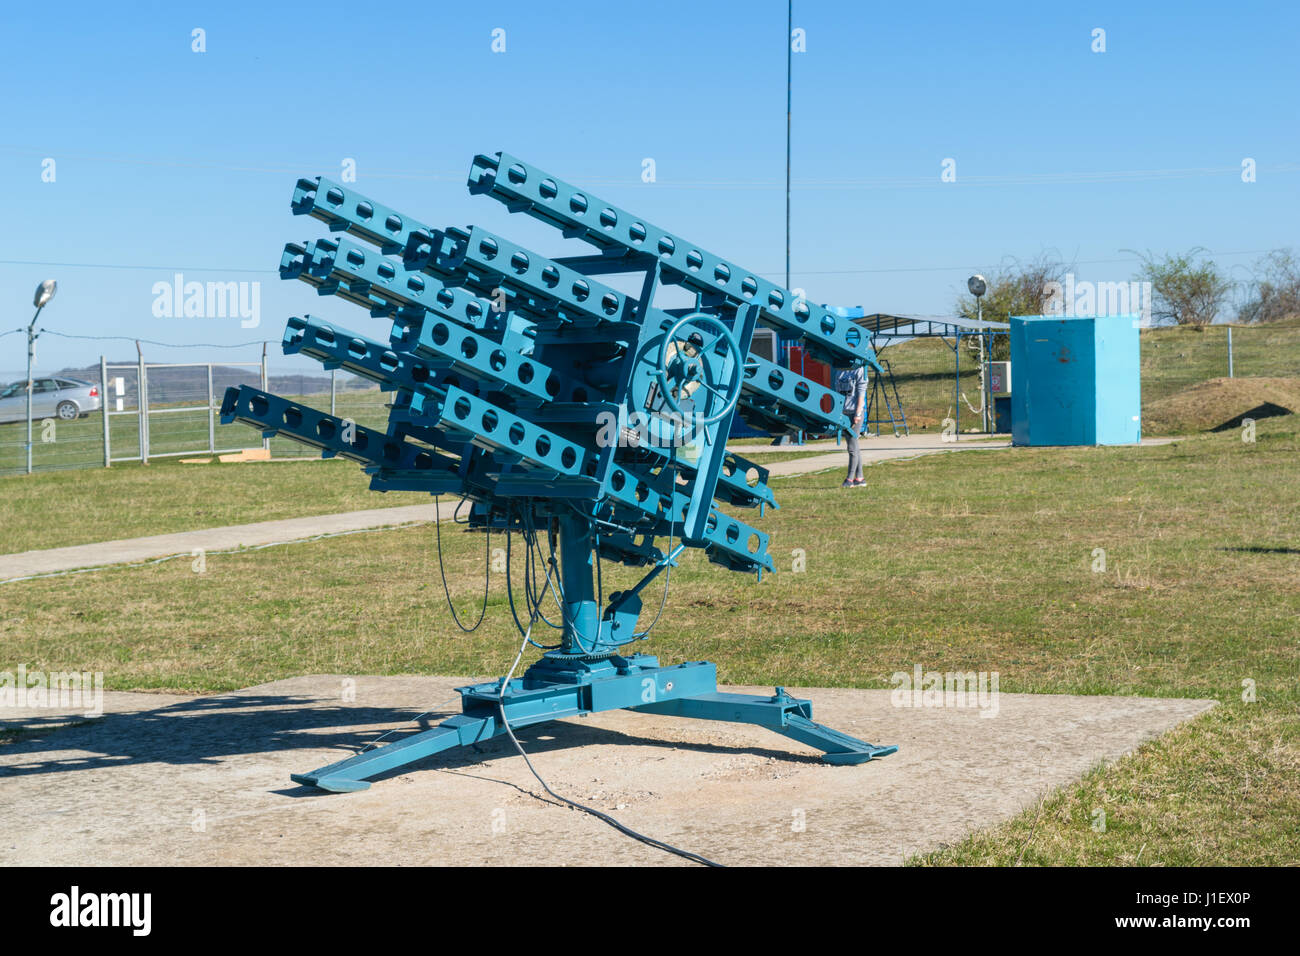 Anti hail rocket launcher inside and anti hailstorm prevention site - Stock Image